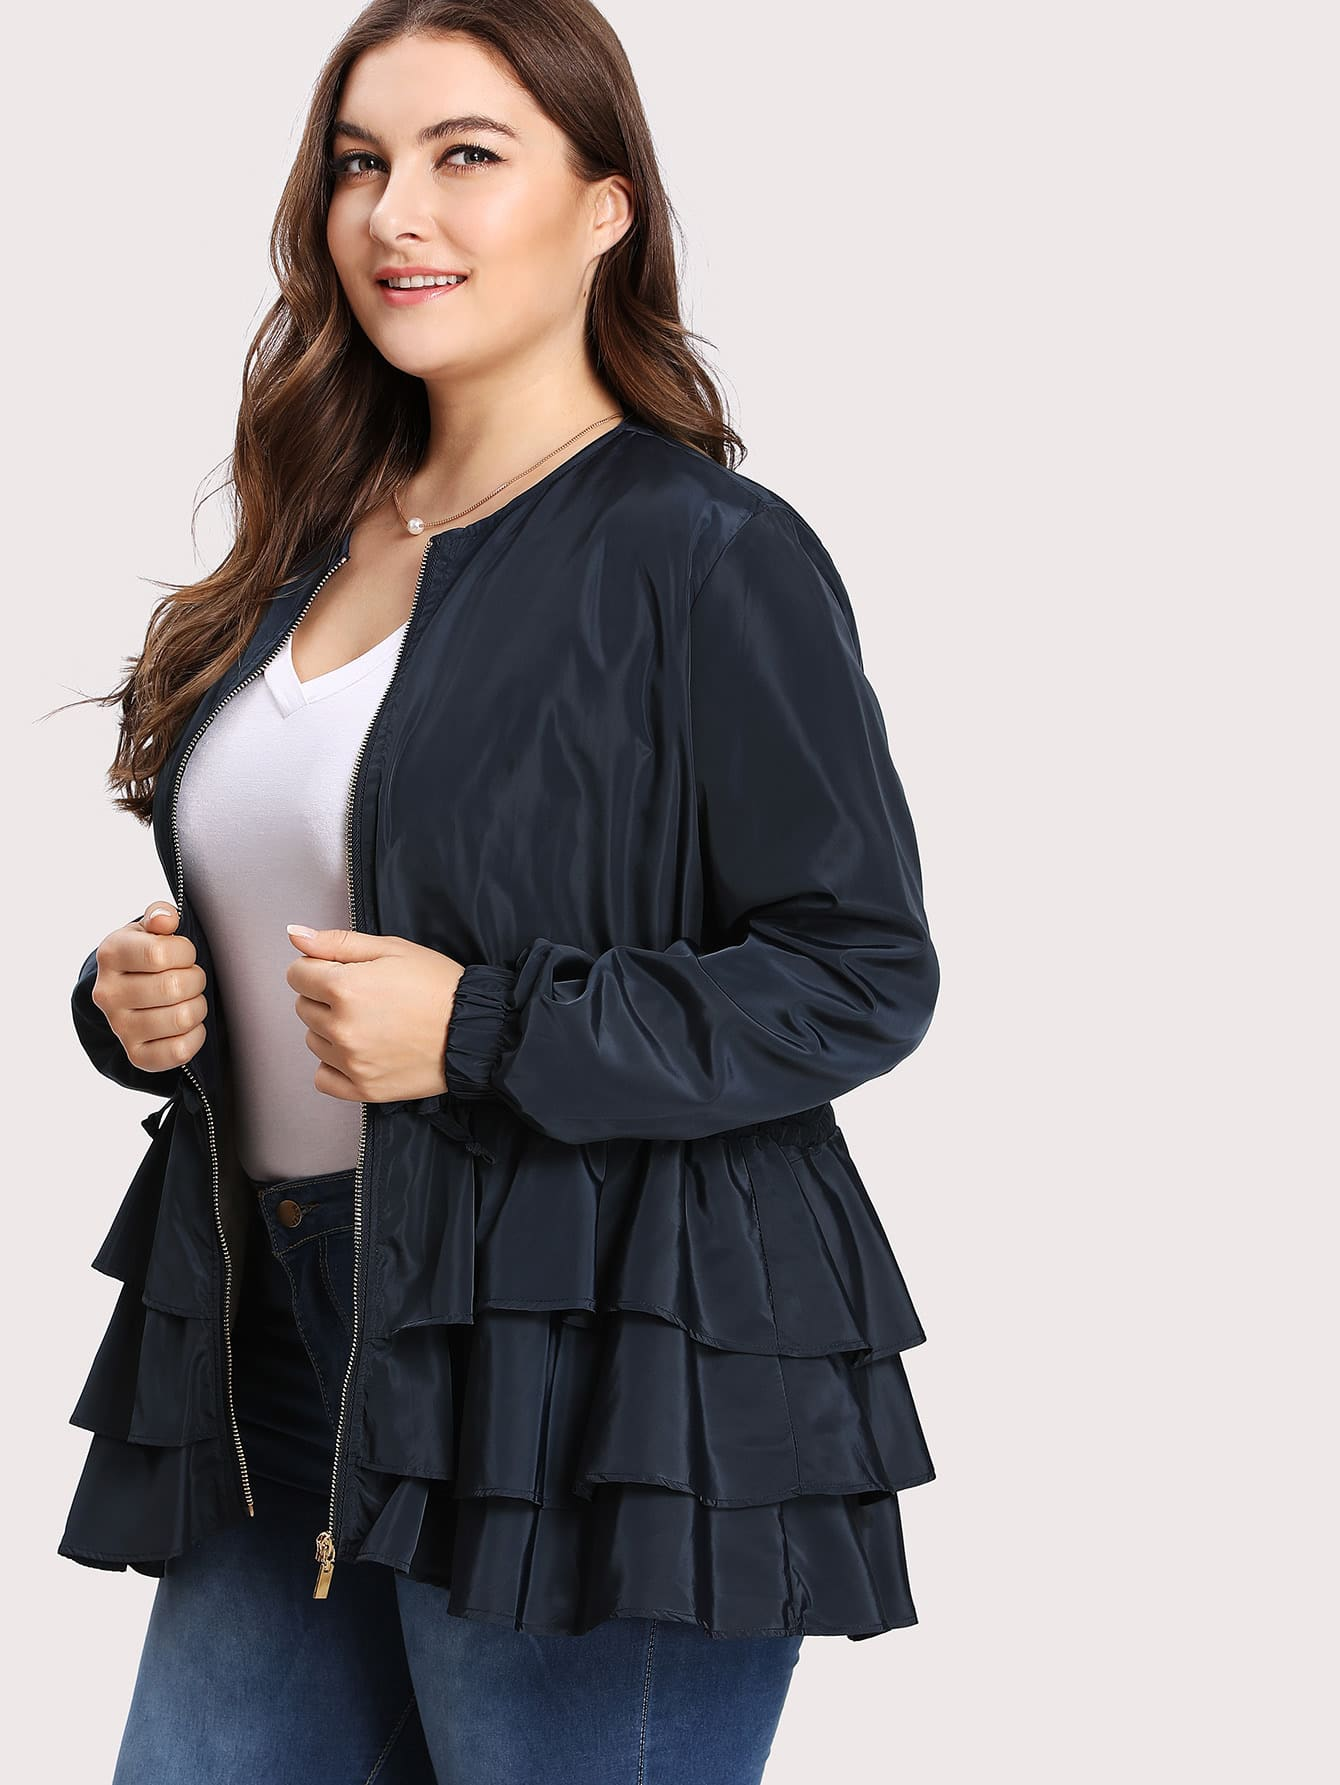 Tiered Layer Ruffle Jacket